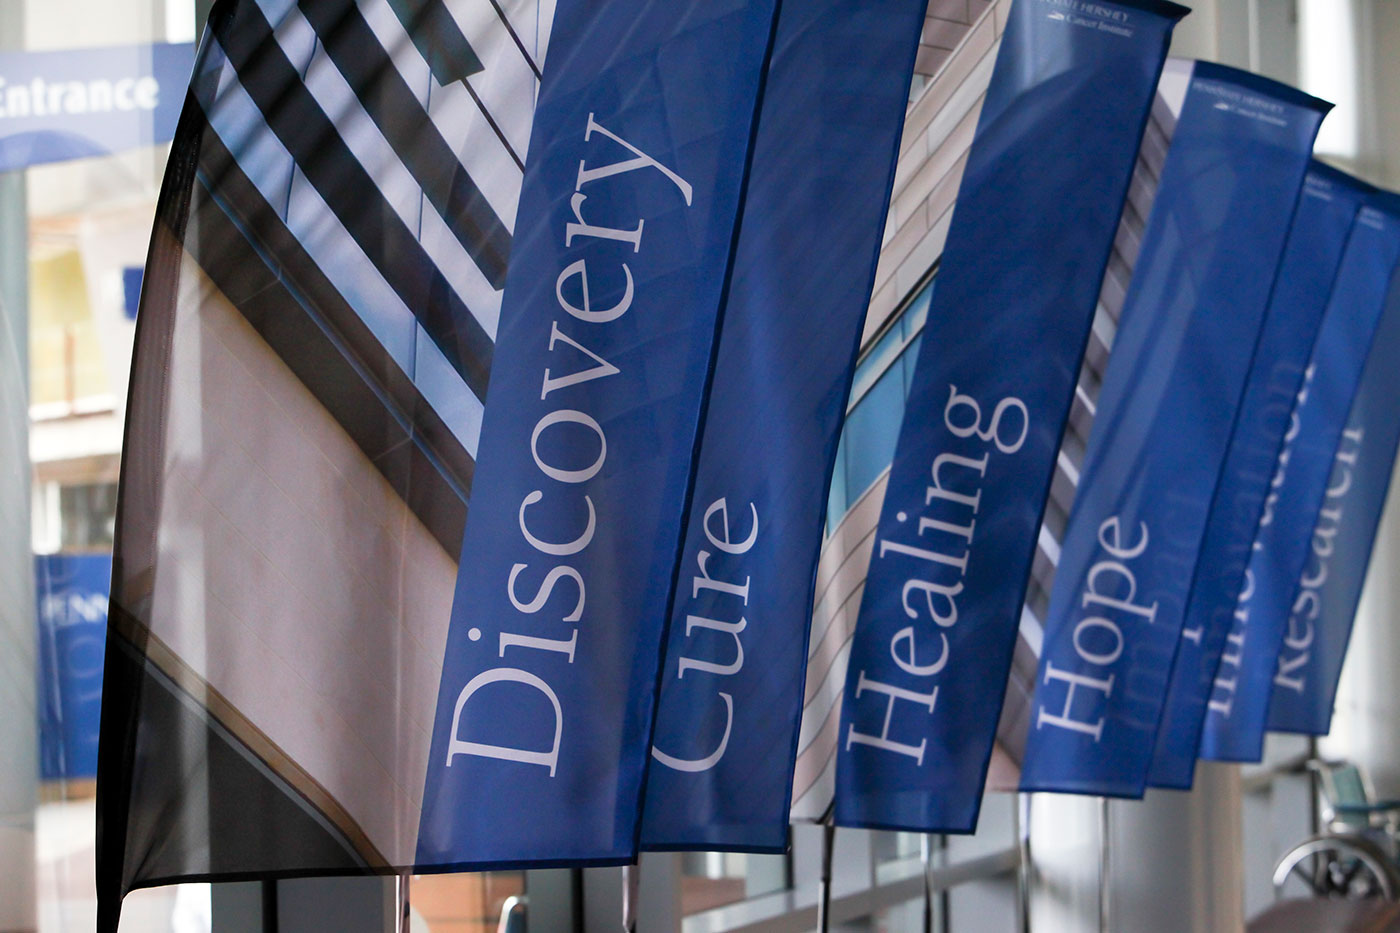 Banners inside Penn State Cancer Institute are depicted with the words Discovery, Cure, Healing and Hope visible, and other banners with unreadable text seen in the background.